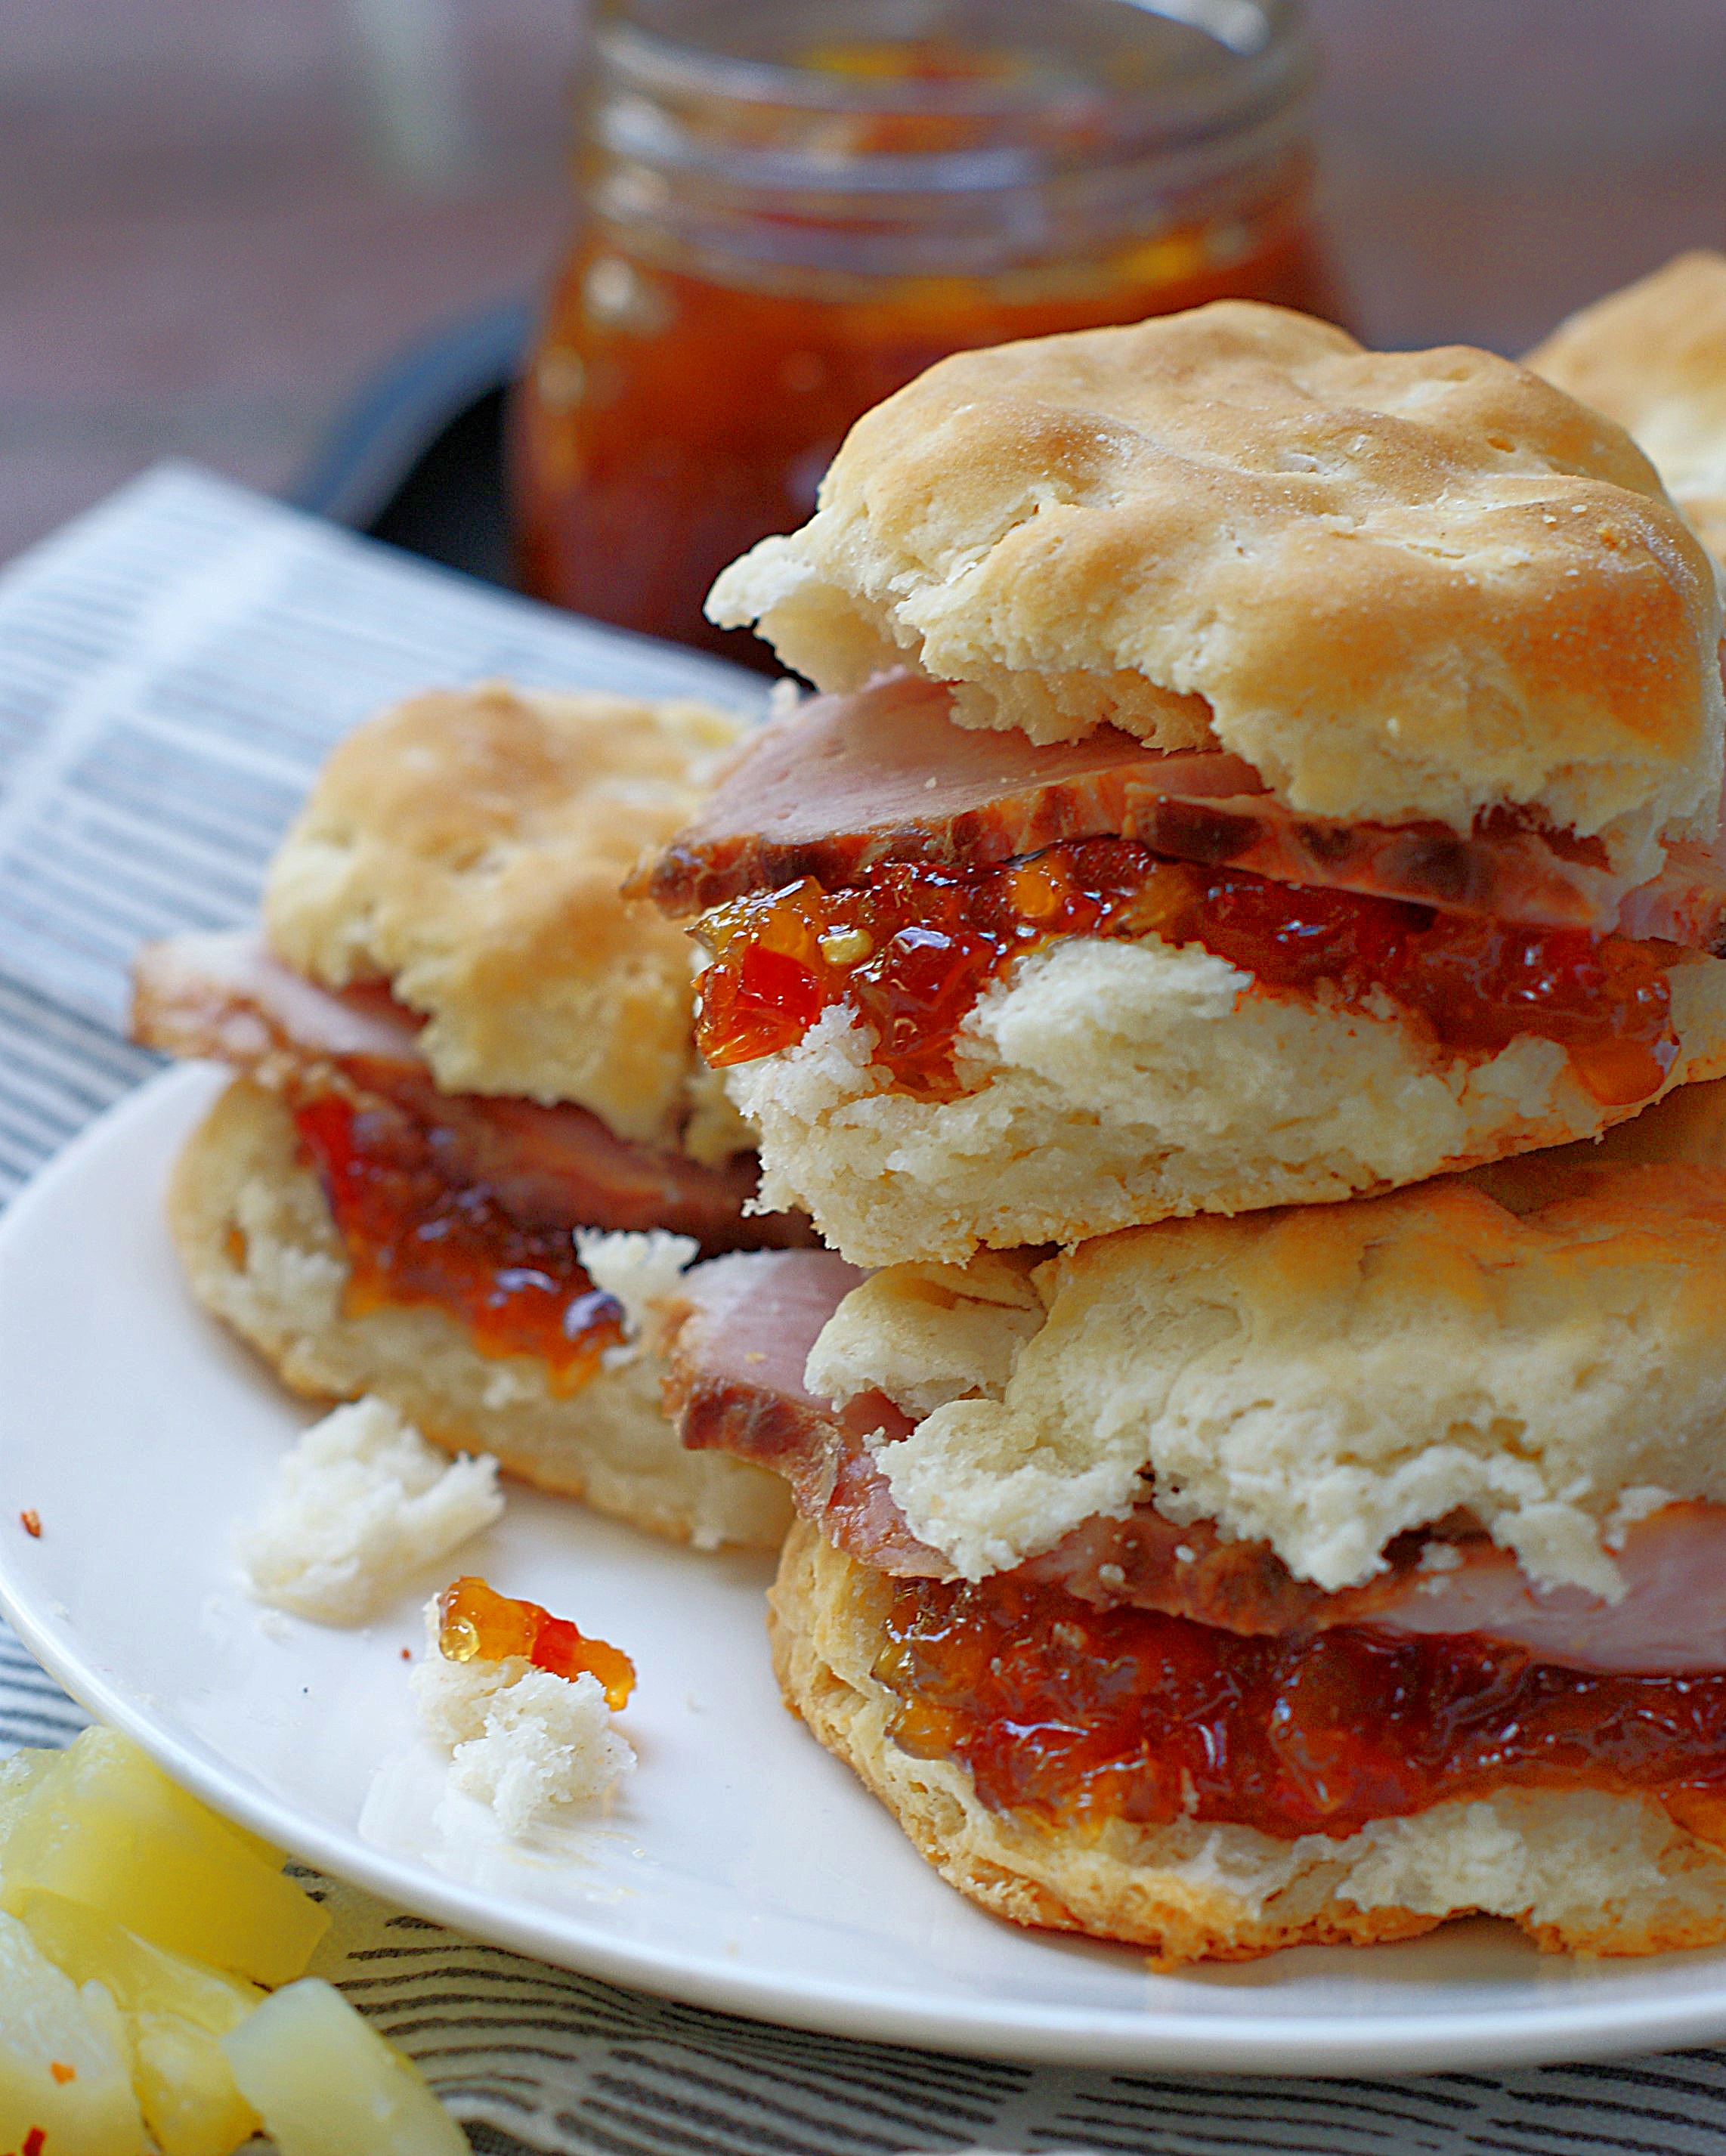 Biscuit sliders made with ham and pineapple red pepper jelly